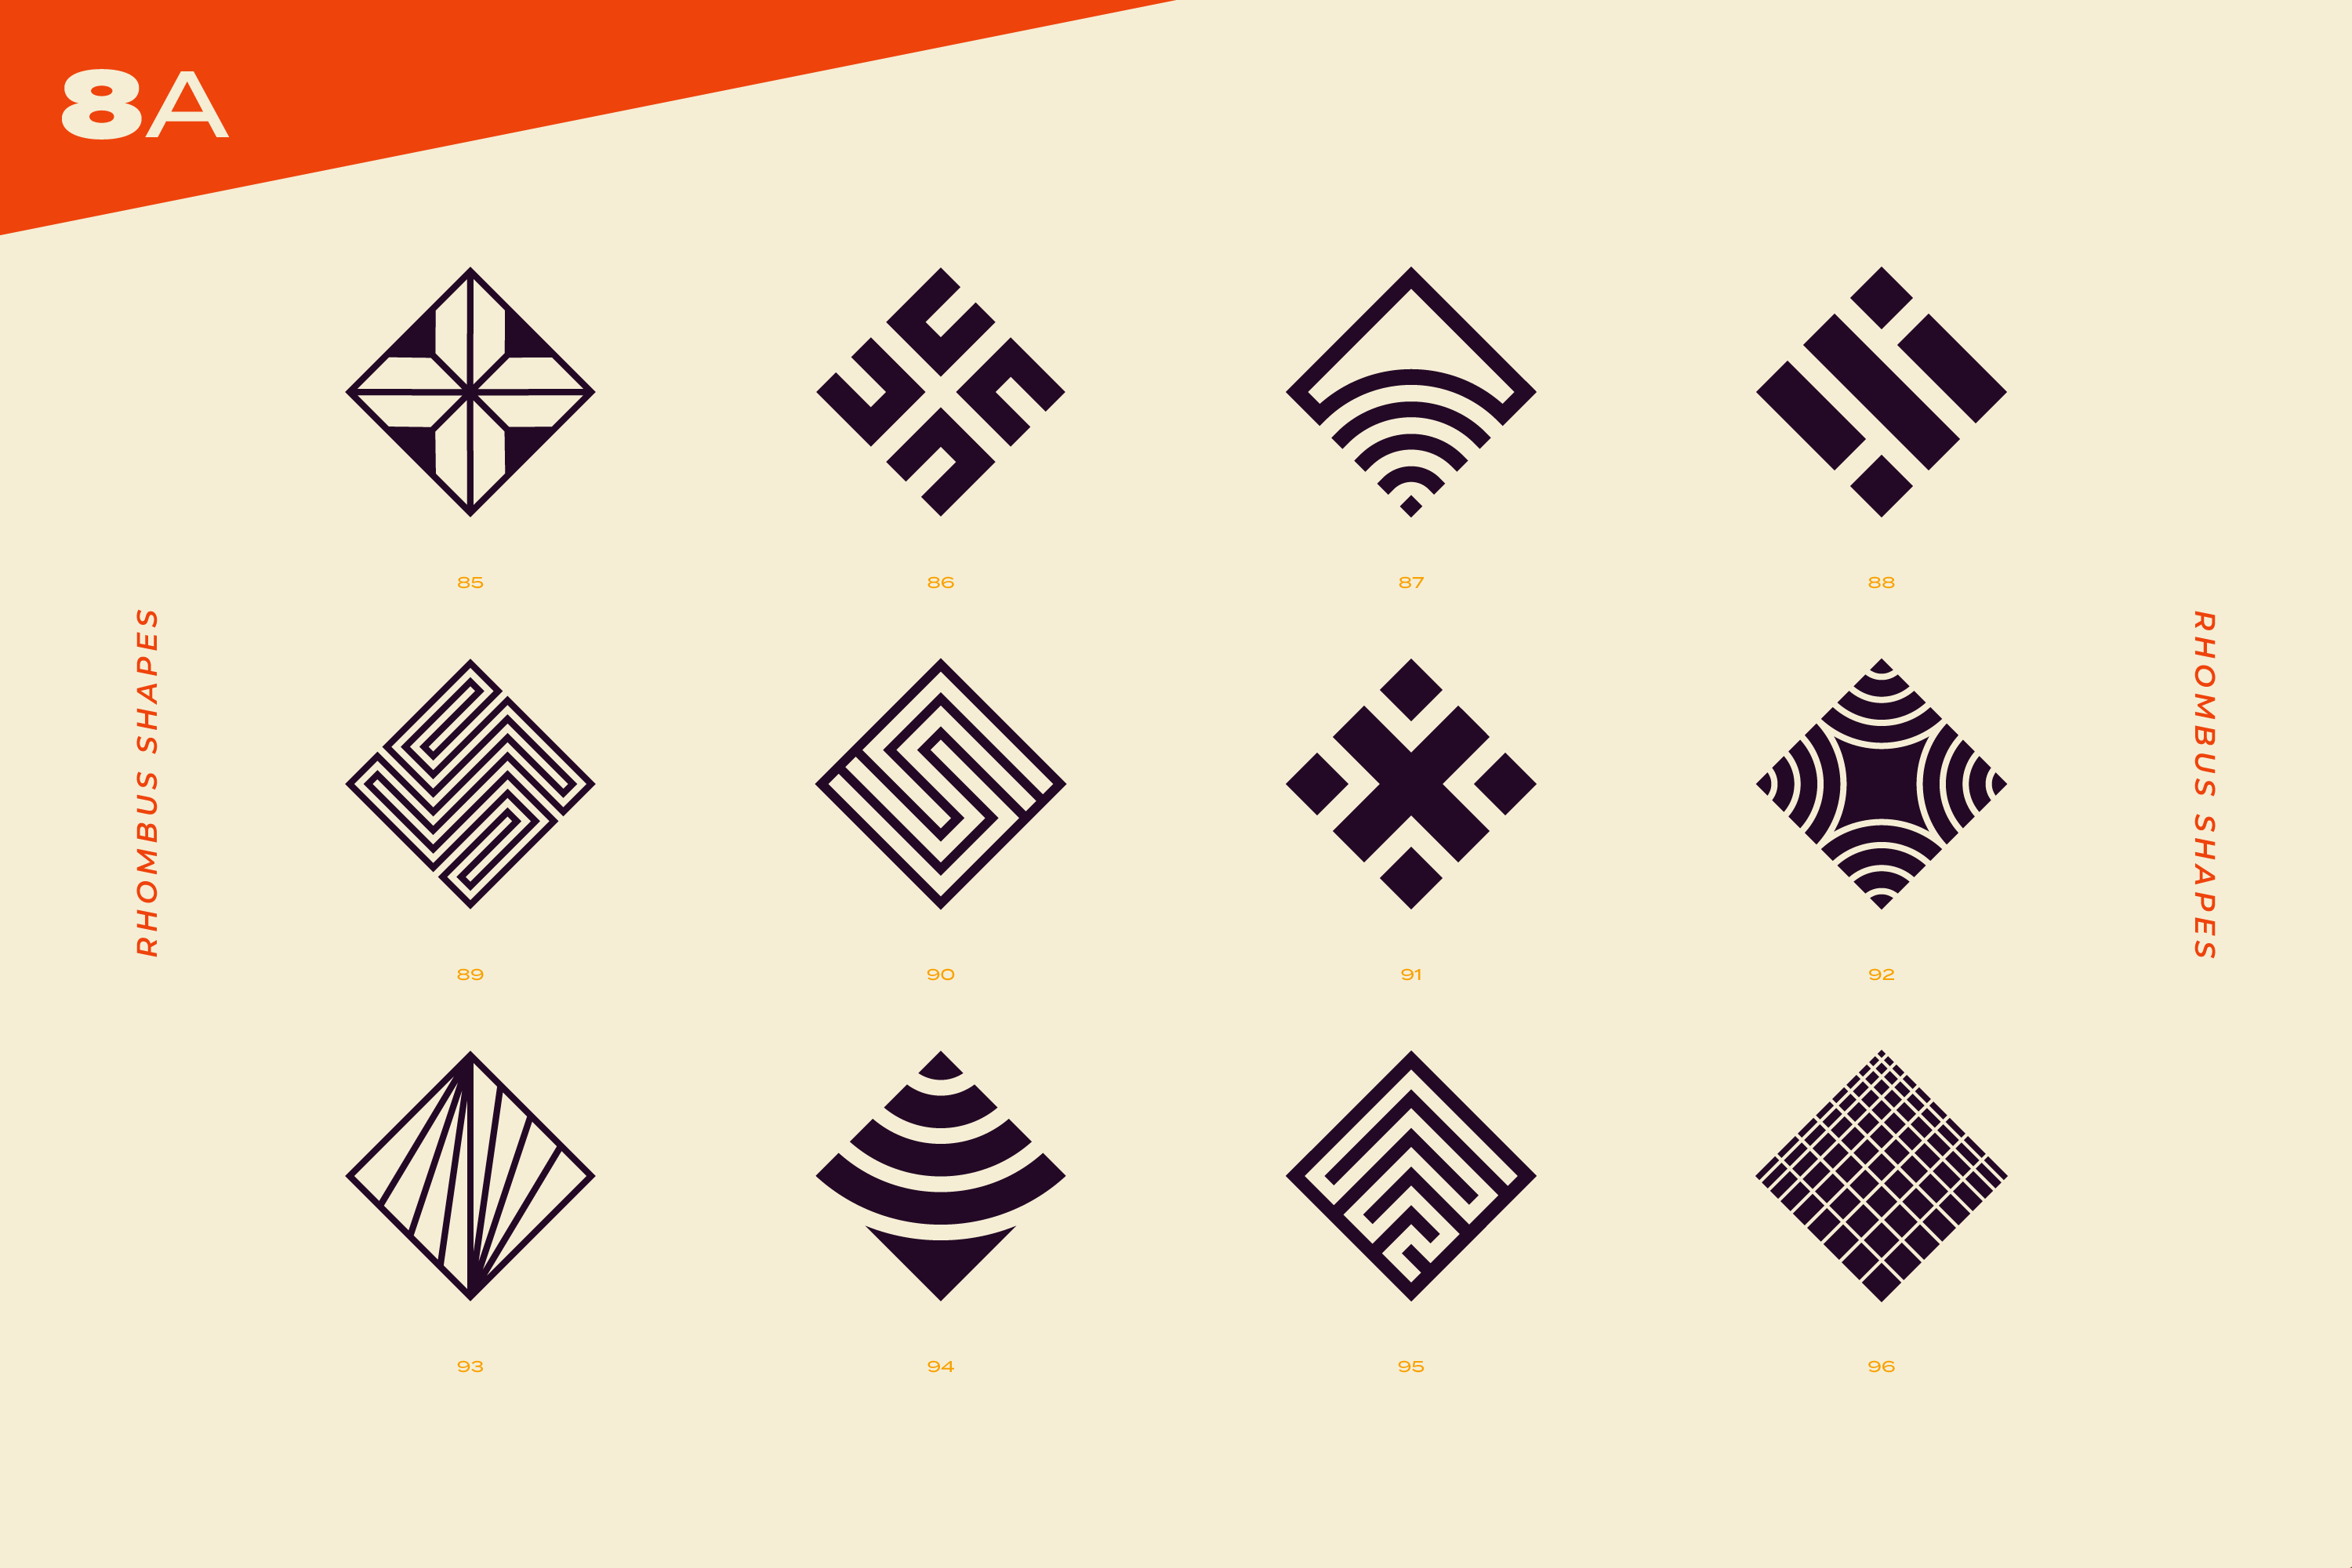 96 Abstract logo marks & geometric shapes collection example image 22